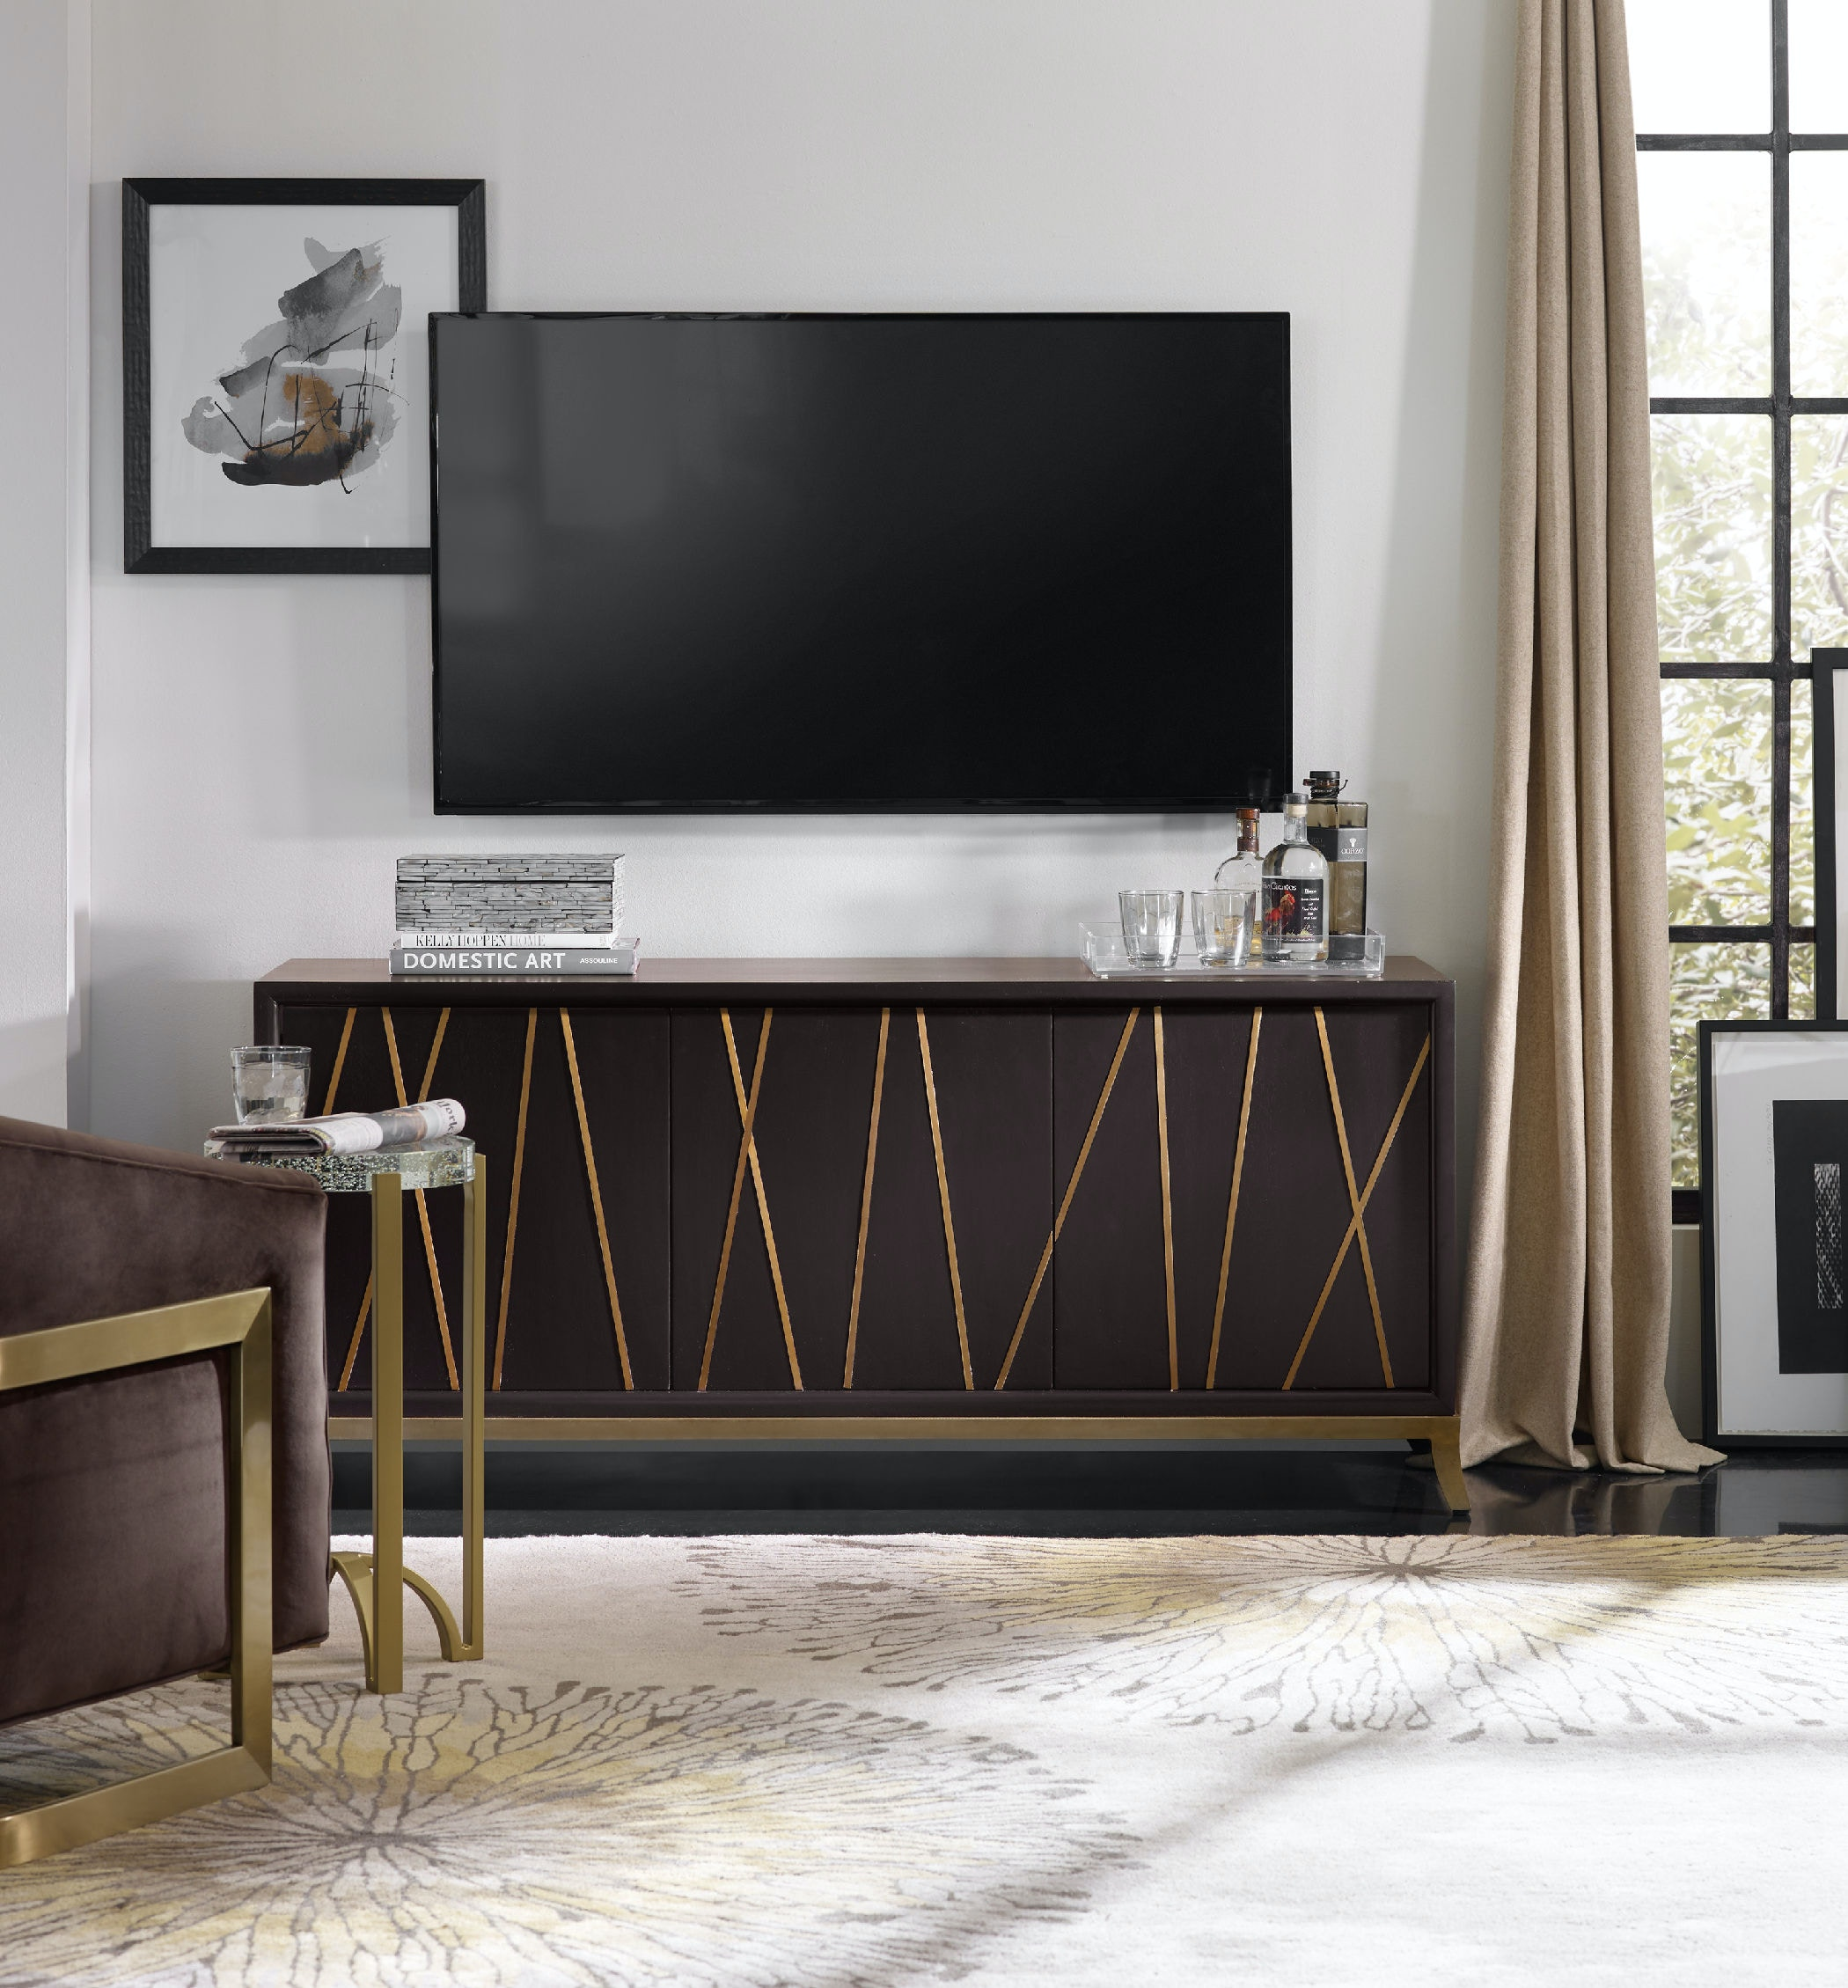 Hooker Furniture Home Entertainment Entertainment Console 64in